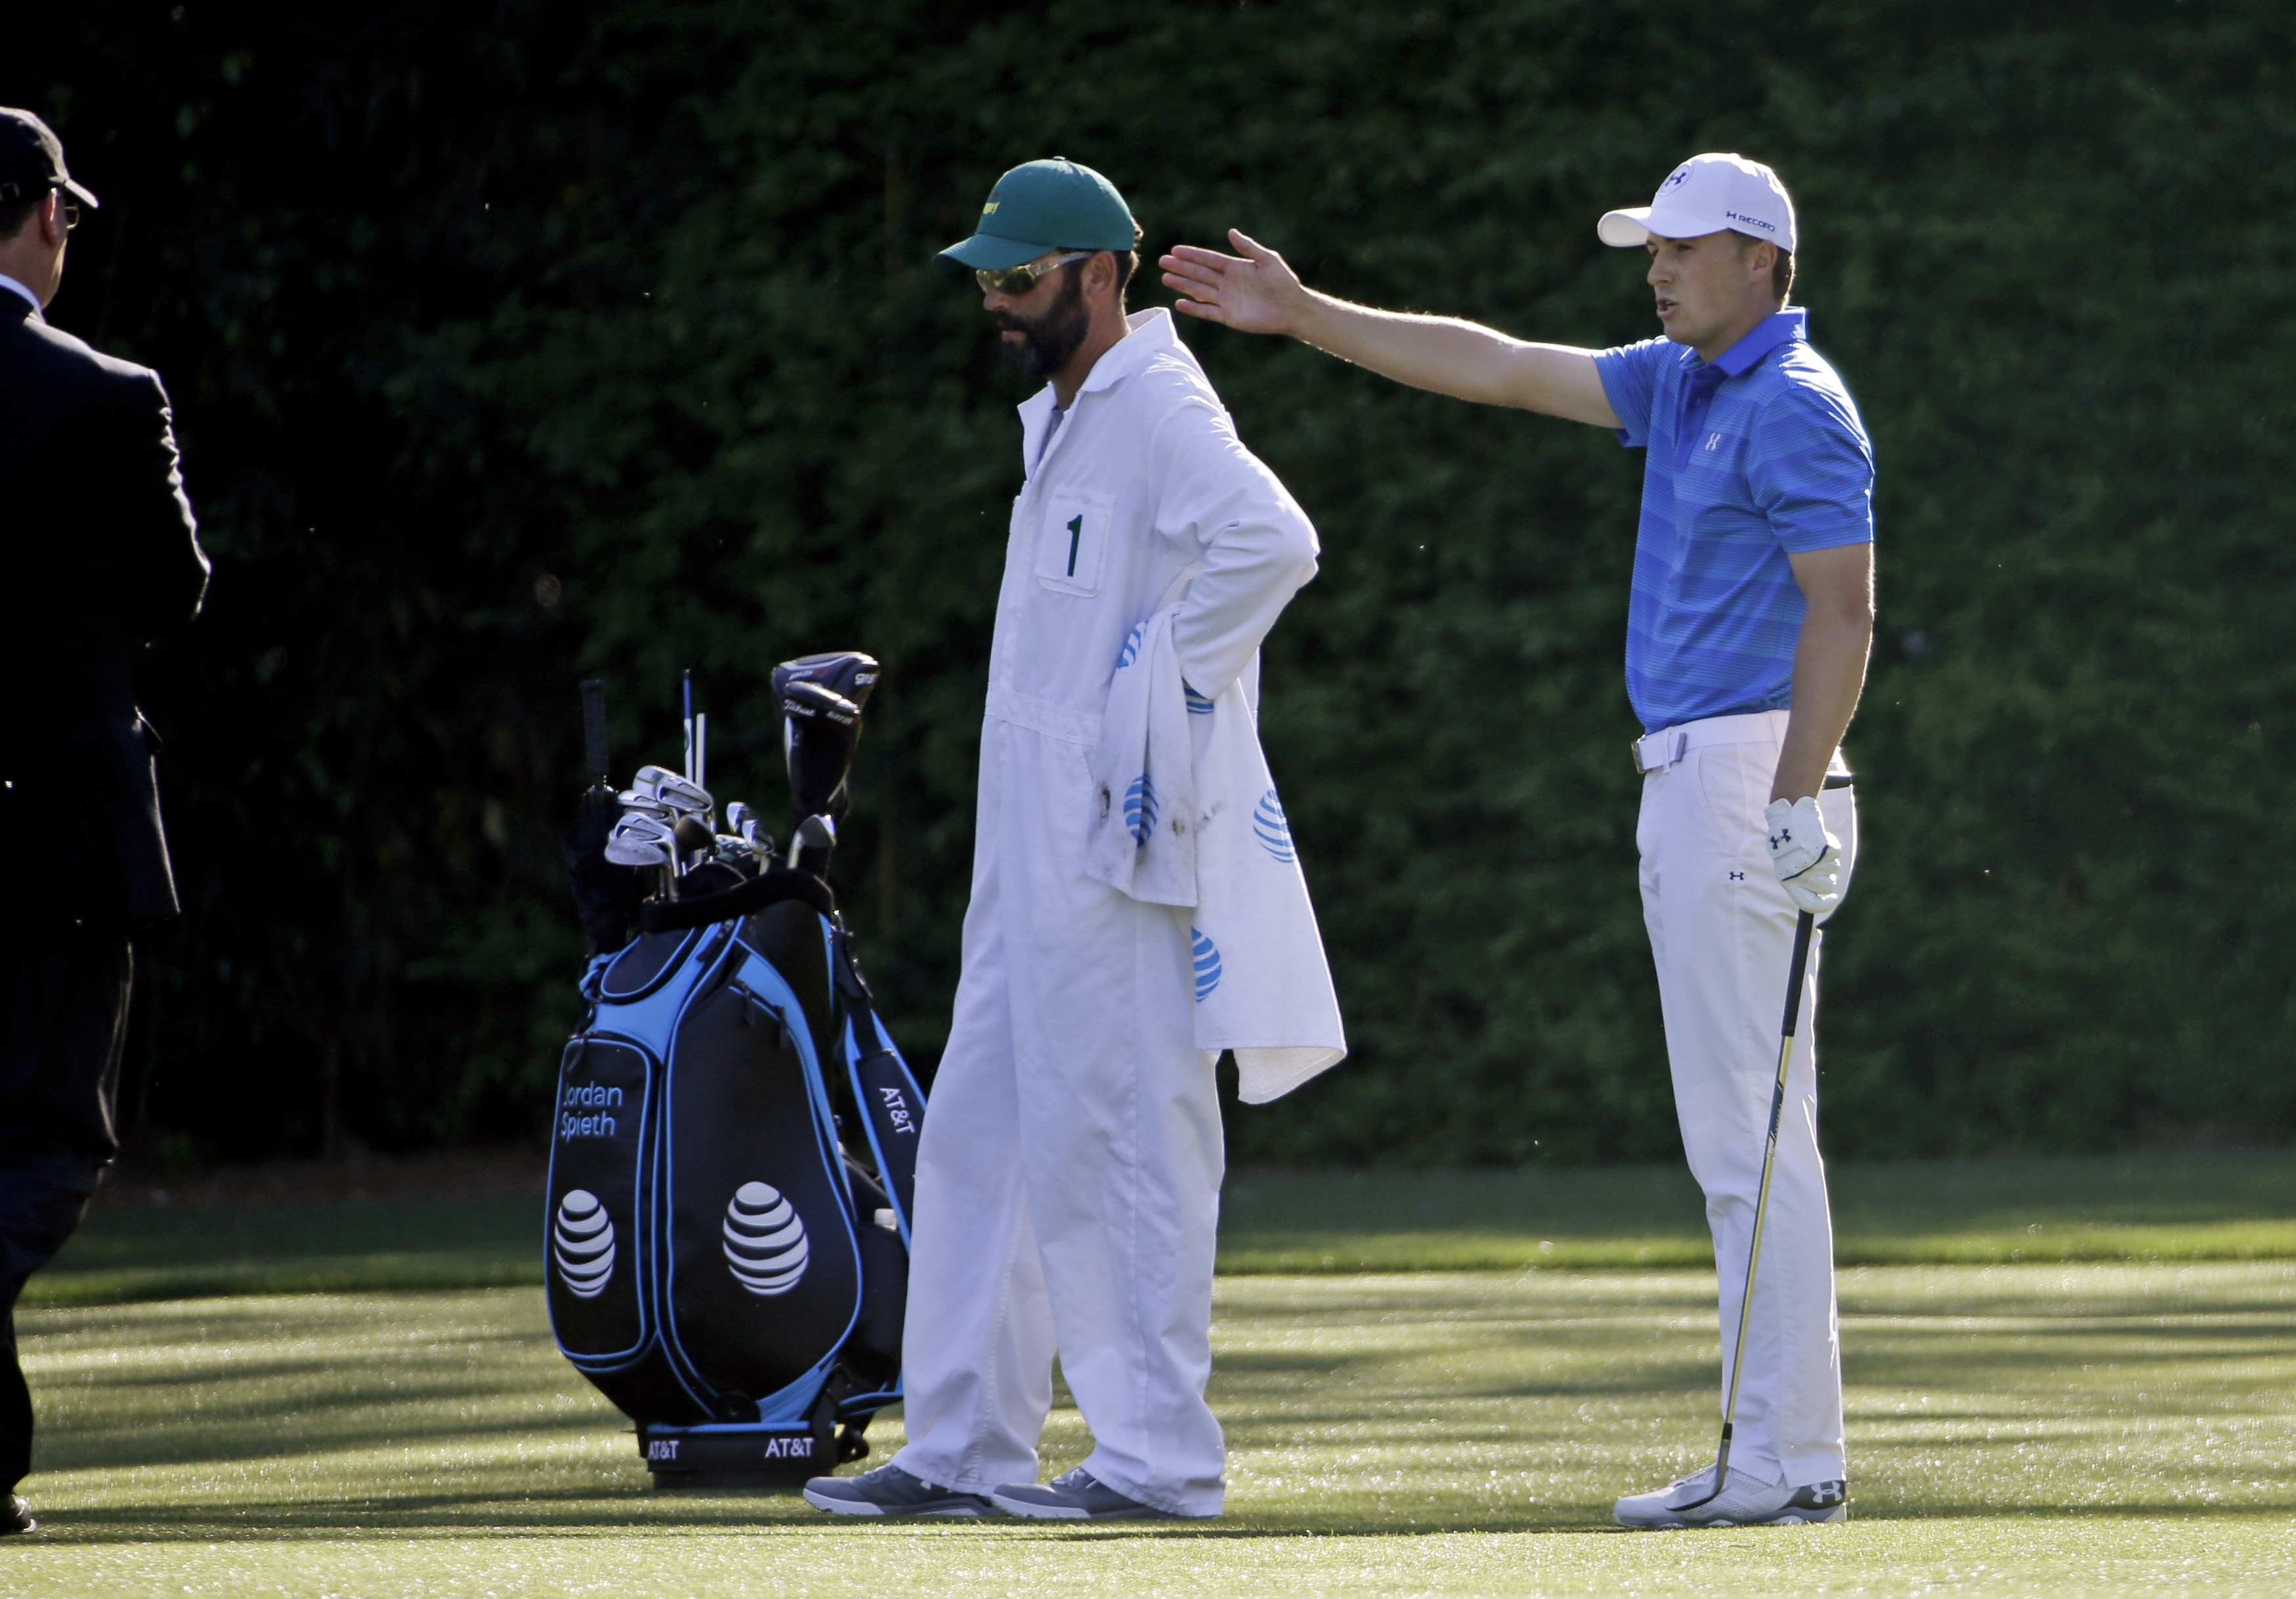 Jordan Spieth discuss his shot after his second drop on the 12th fairway after putting his ball in the water twice during the final round of the Masters golf tournament Sunday, April 10, 2016, in Augusta, Ga. (AP Photo/David J. Phillip)